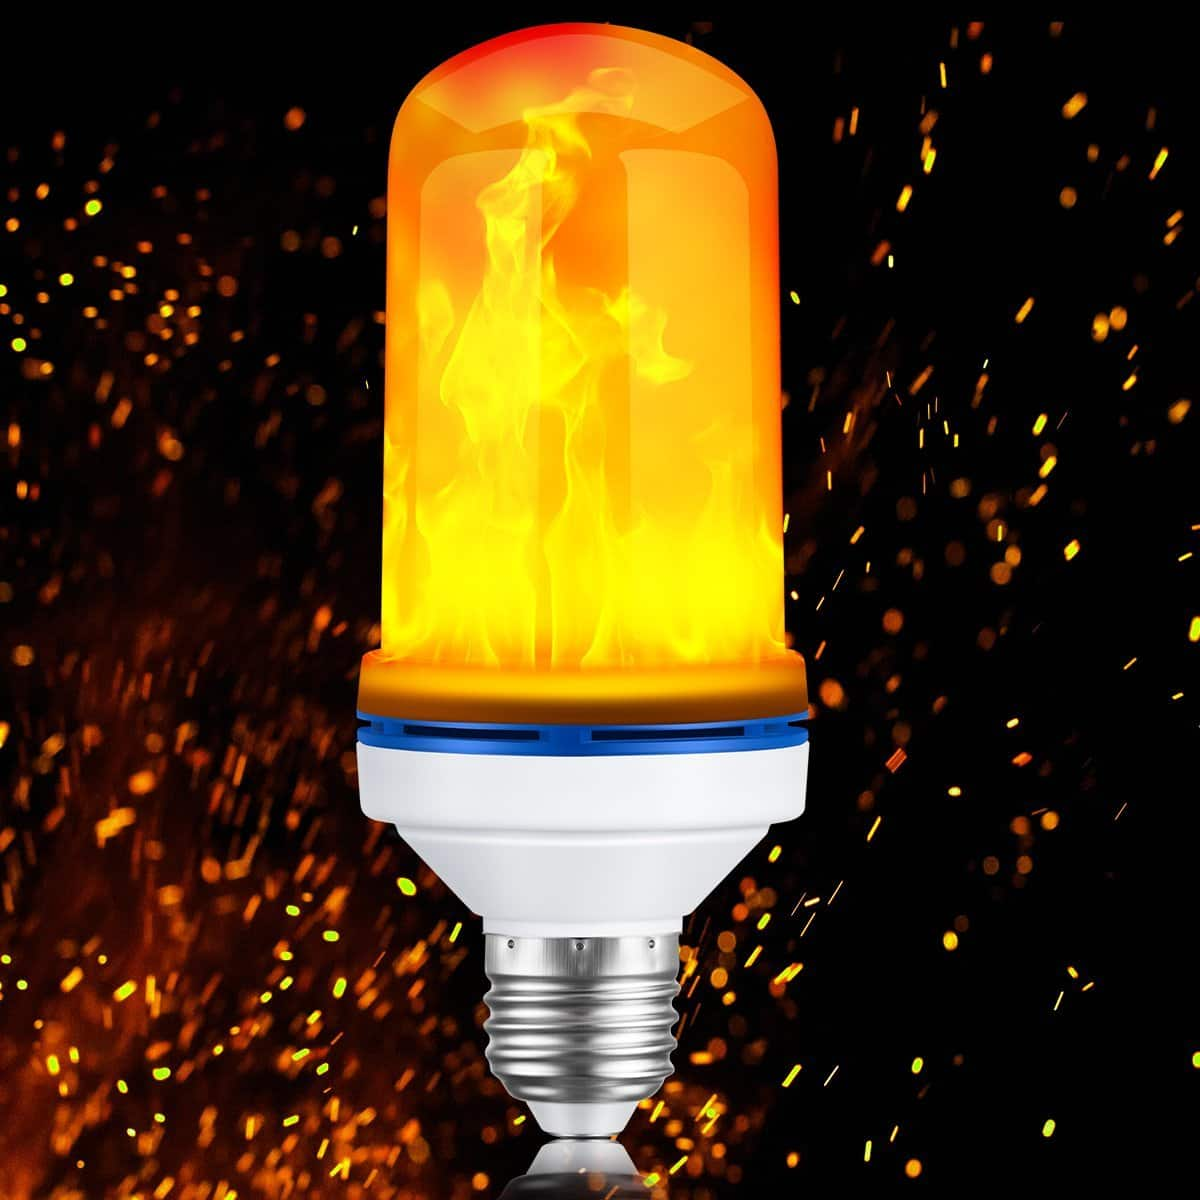 LED Flame Flickering Light Bulb $12.95 AC FS w/ Prime